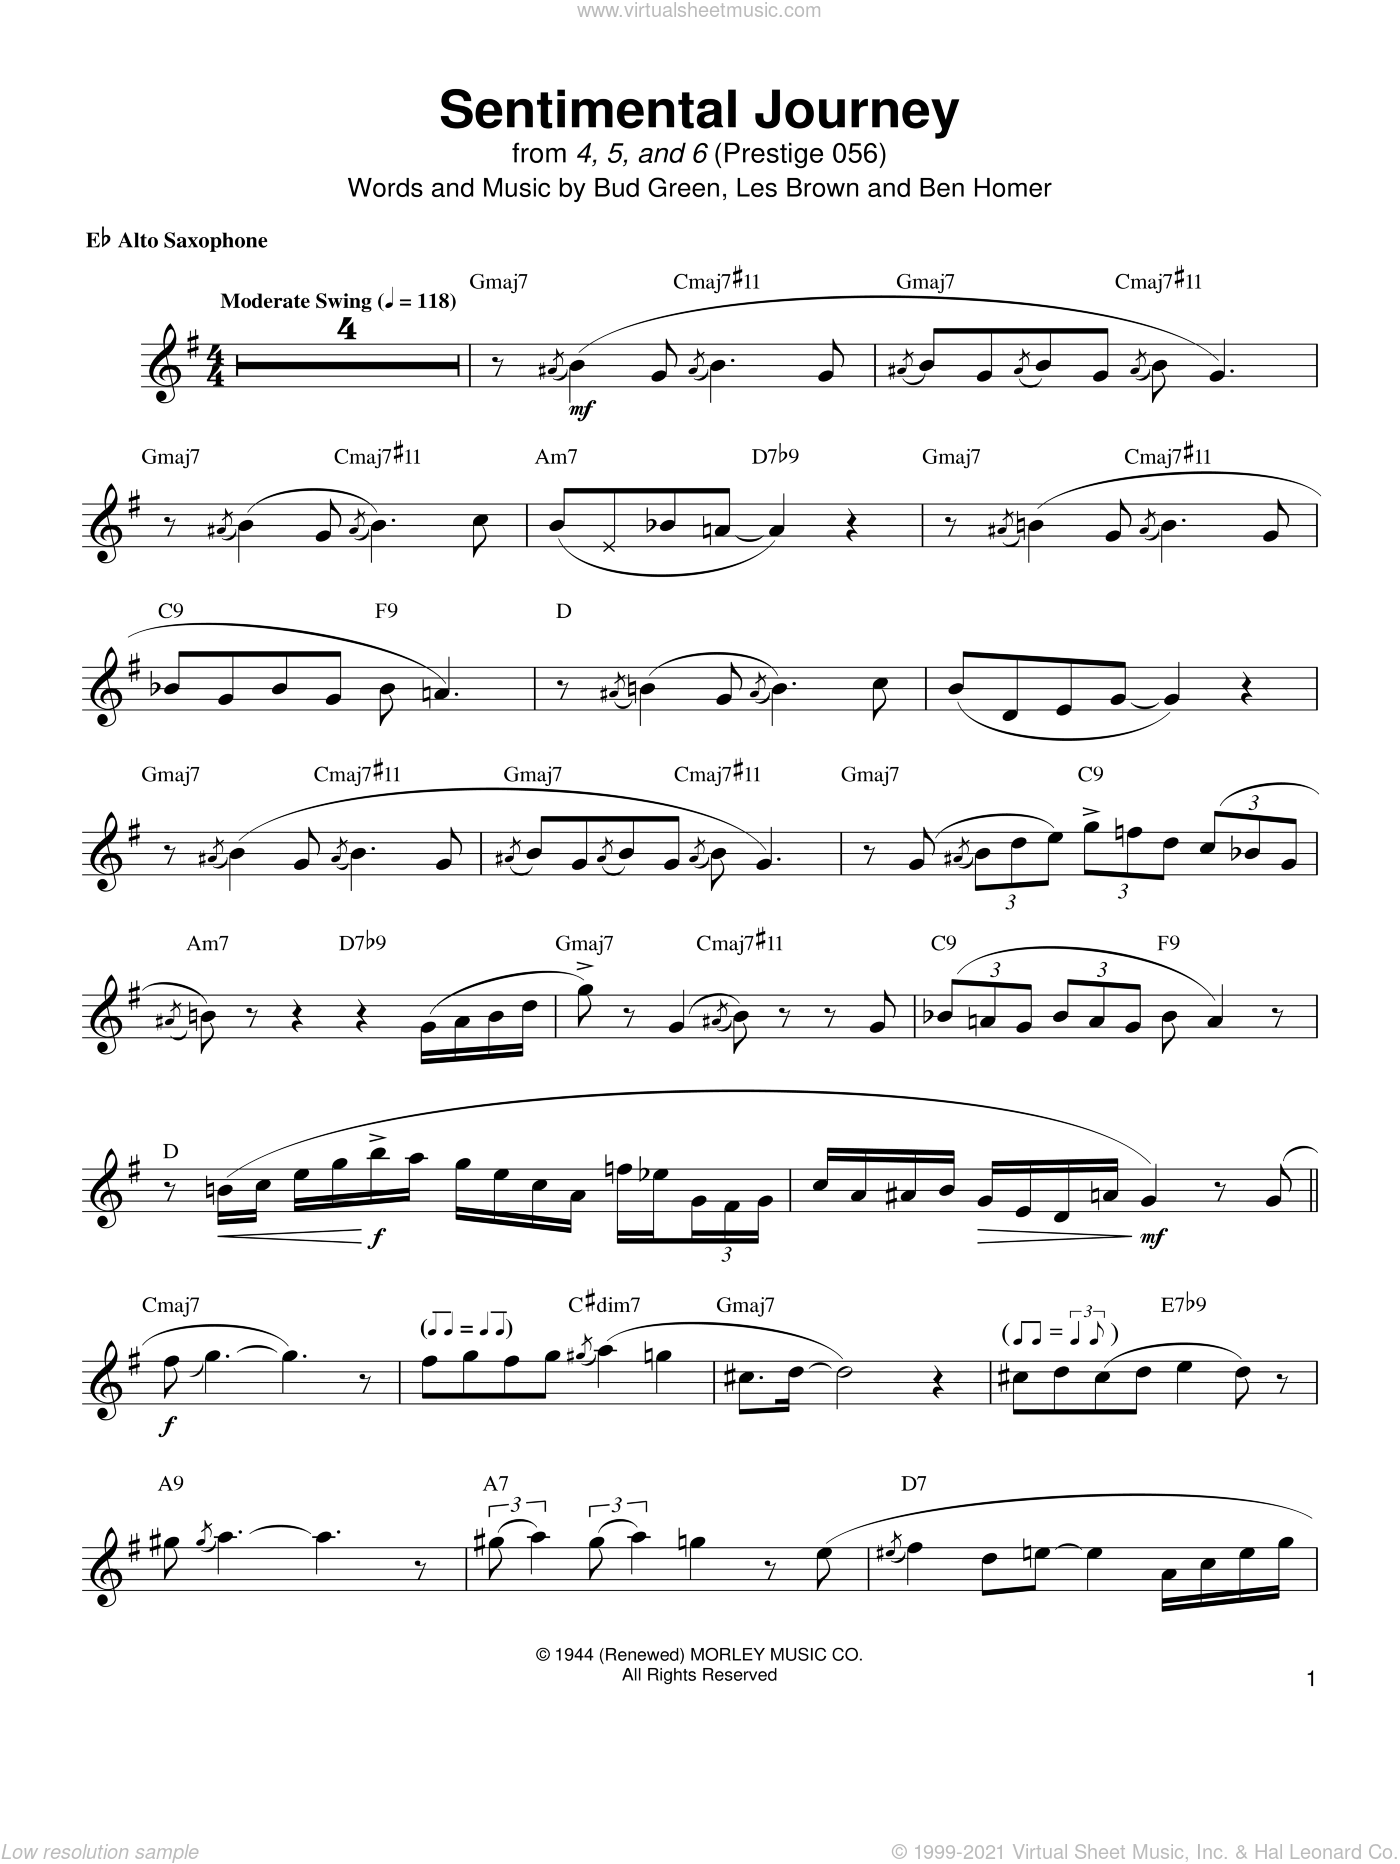 Sentimental Journey sheet music for alto saxophone (transcription) by Jackie McLean, Ben Homer, Bud Green and Les Brown, intermediate skill level